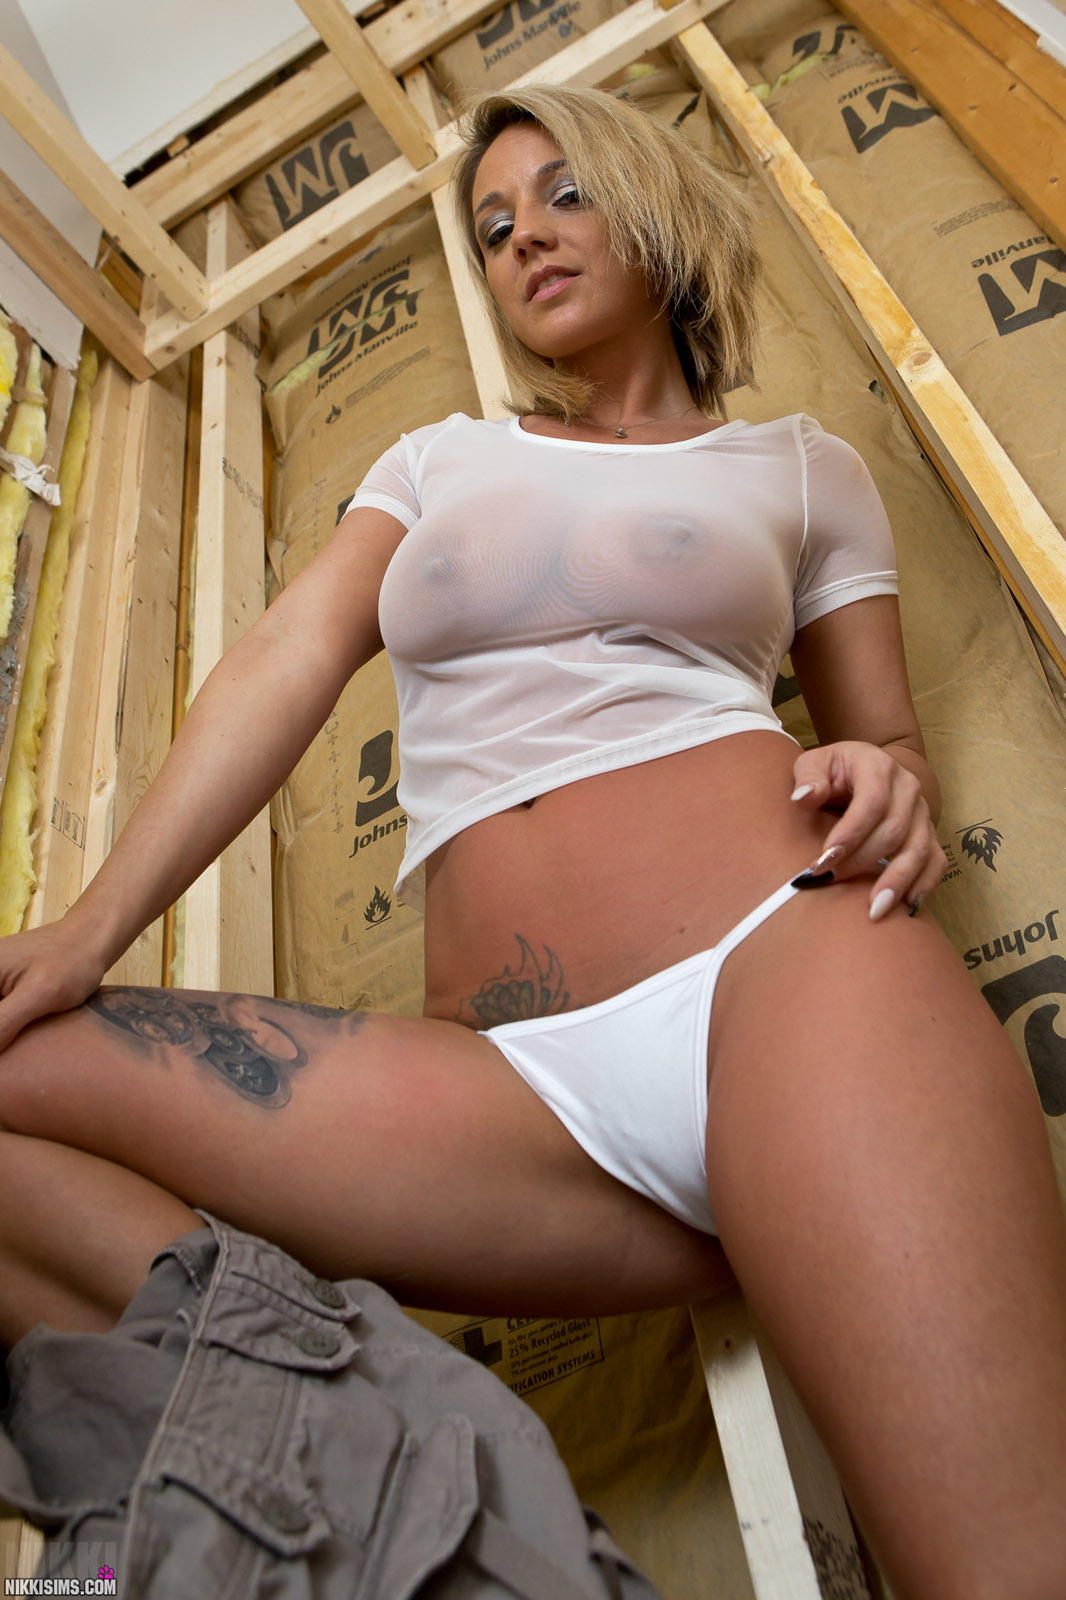 Nikki Sims Construction Babe